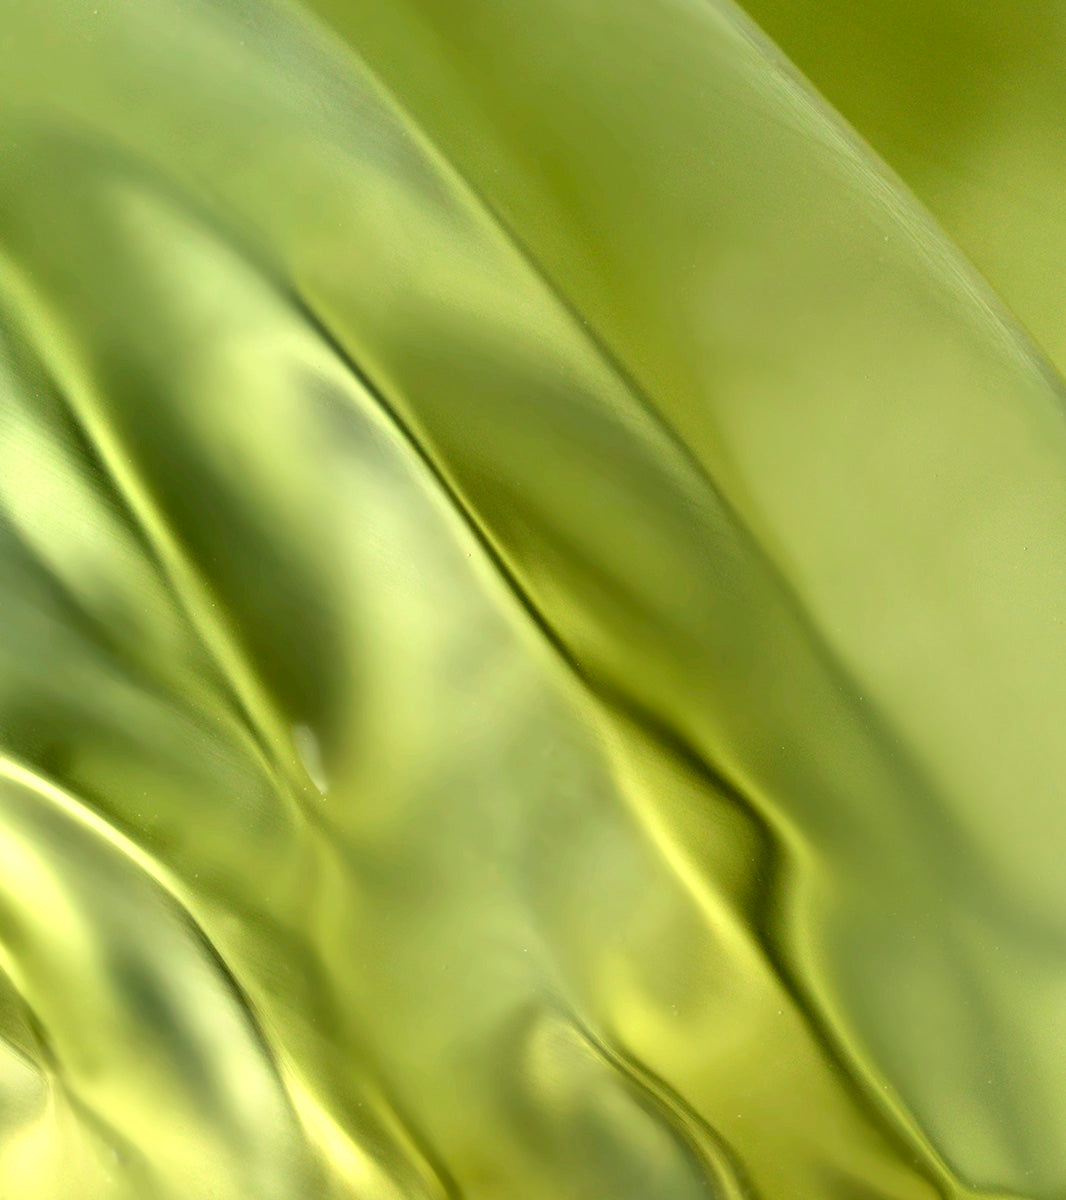 green silk with folds